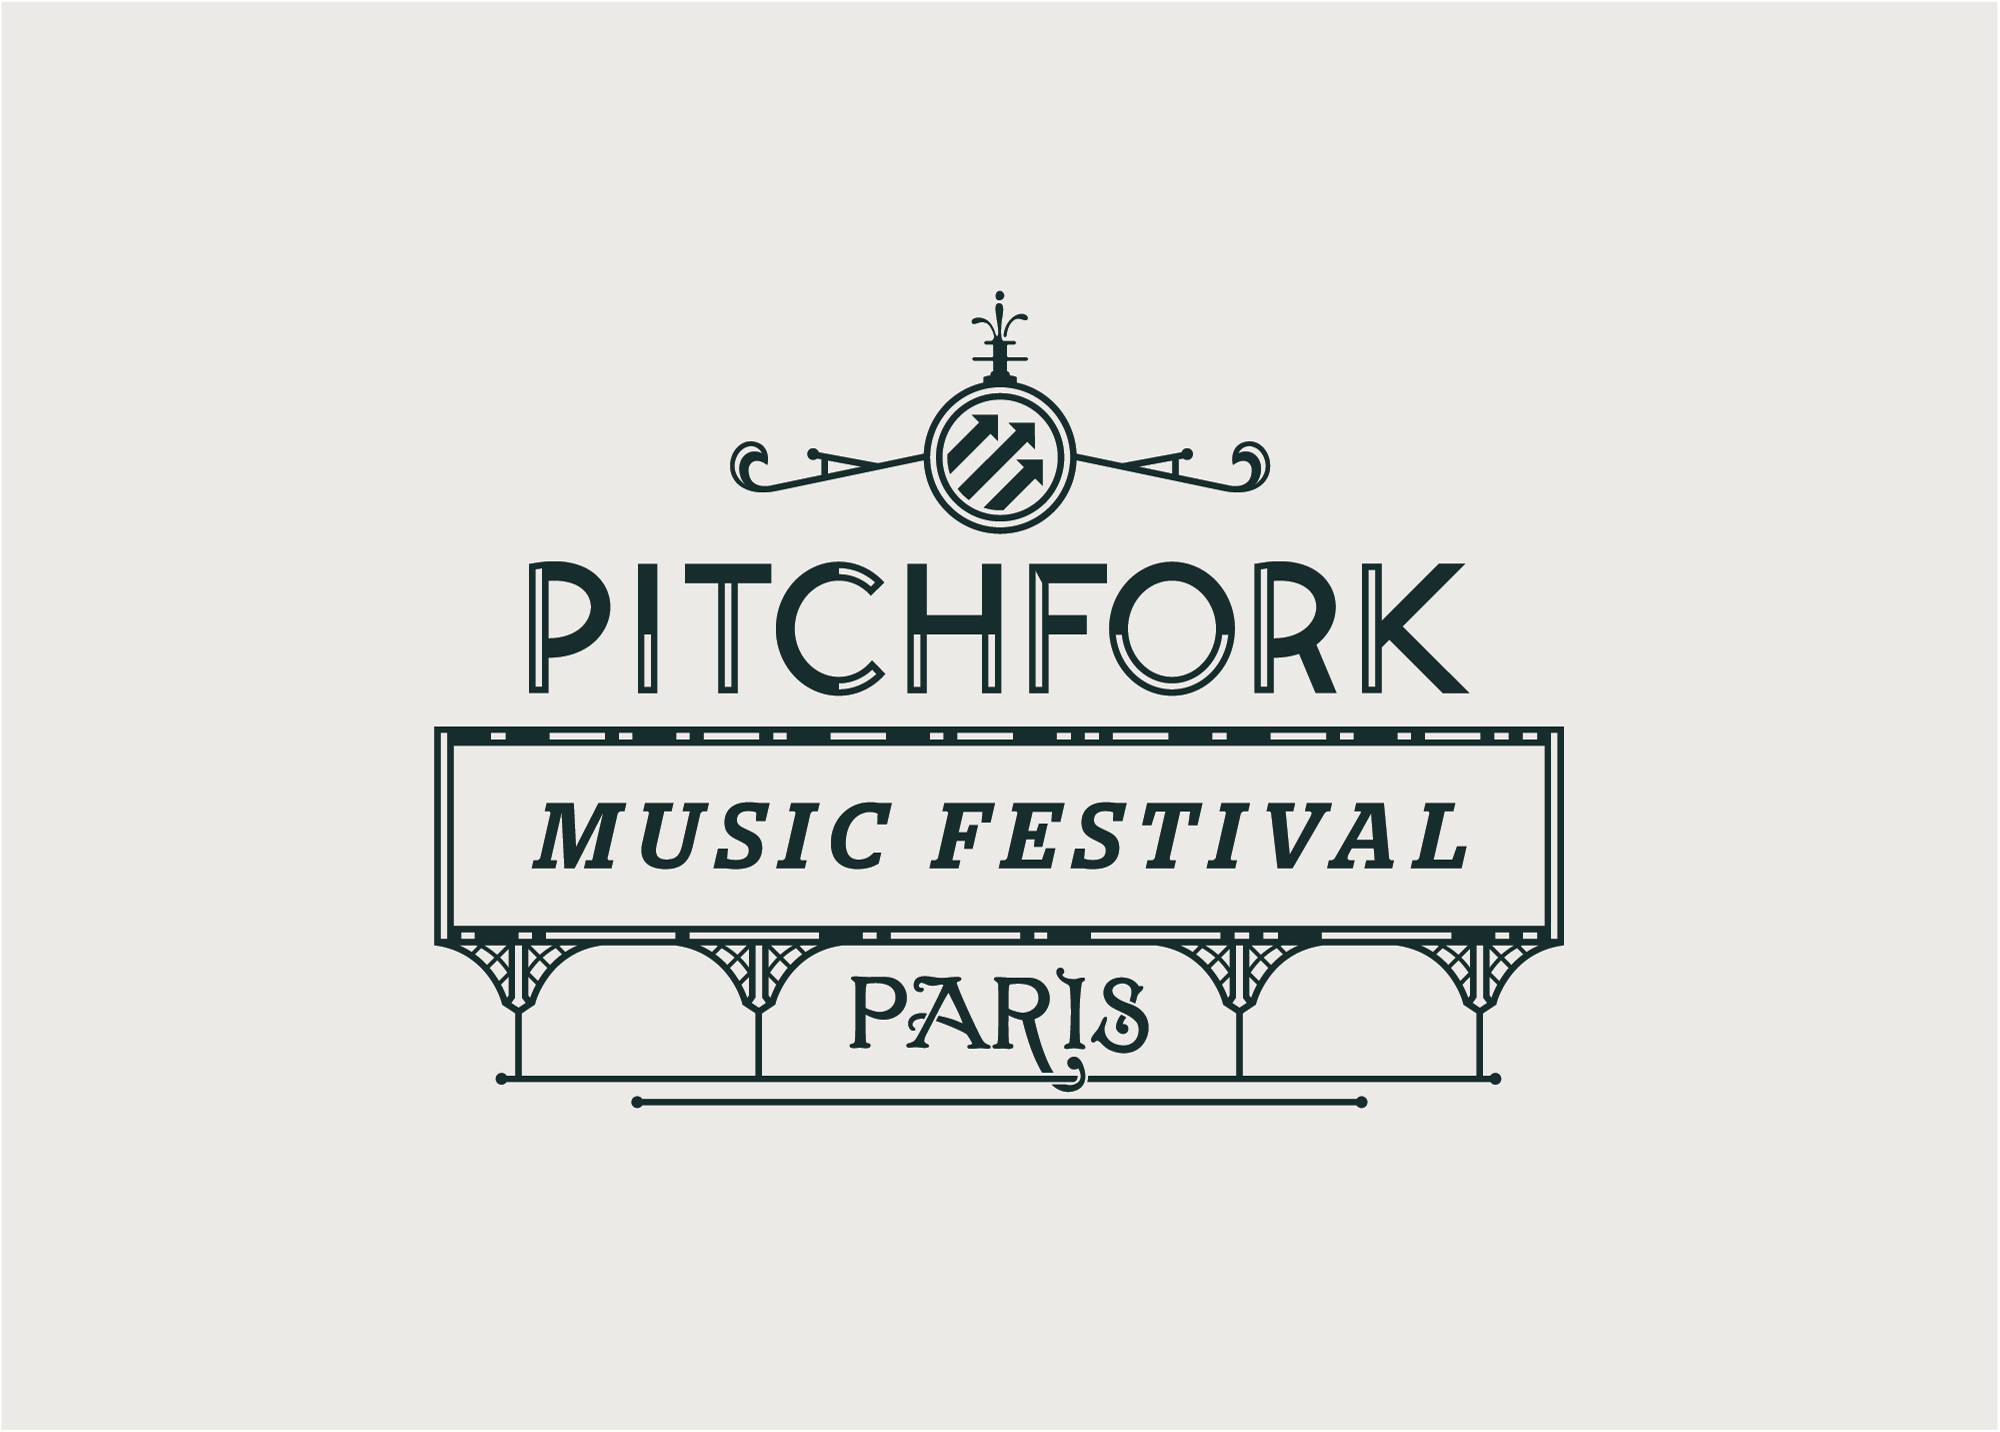 Pitchfork Festival Preview – Paris 2012 : Essentials for Saturday